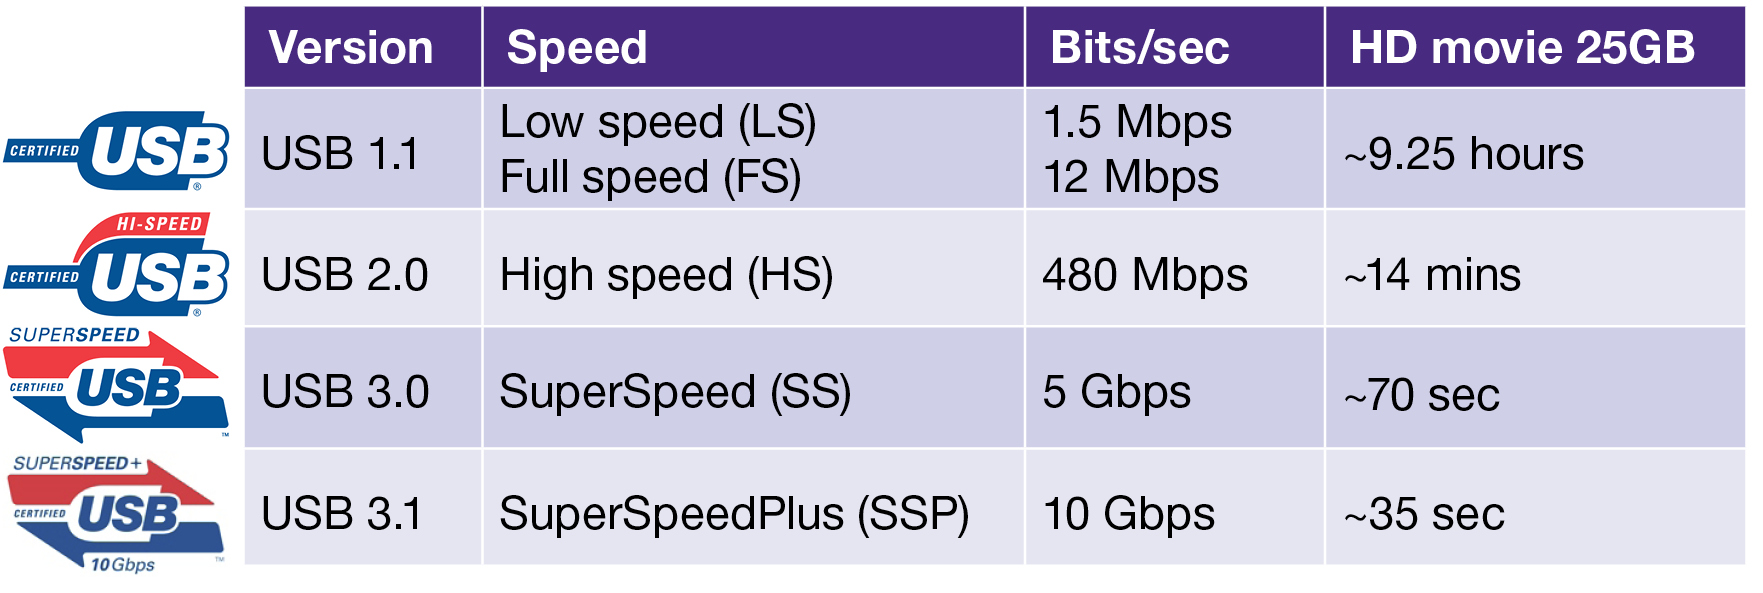 Usb 31 physical link and protocol layer changes synopsys synopsys table 1 biocorpaavc